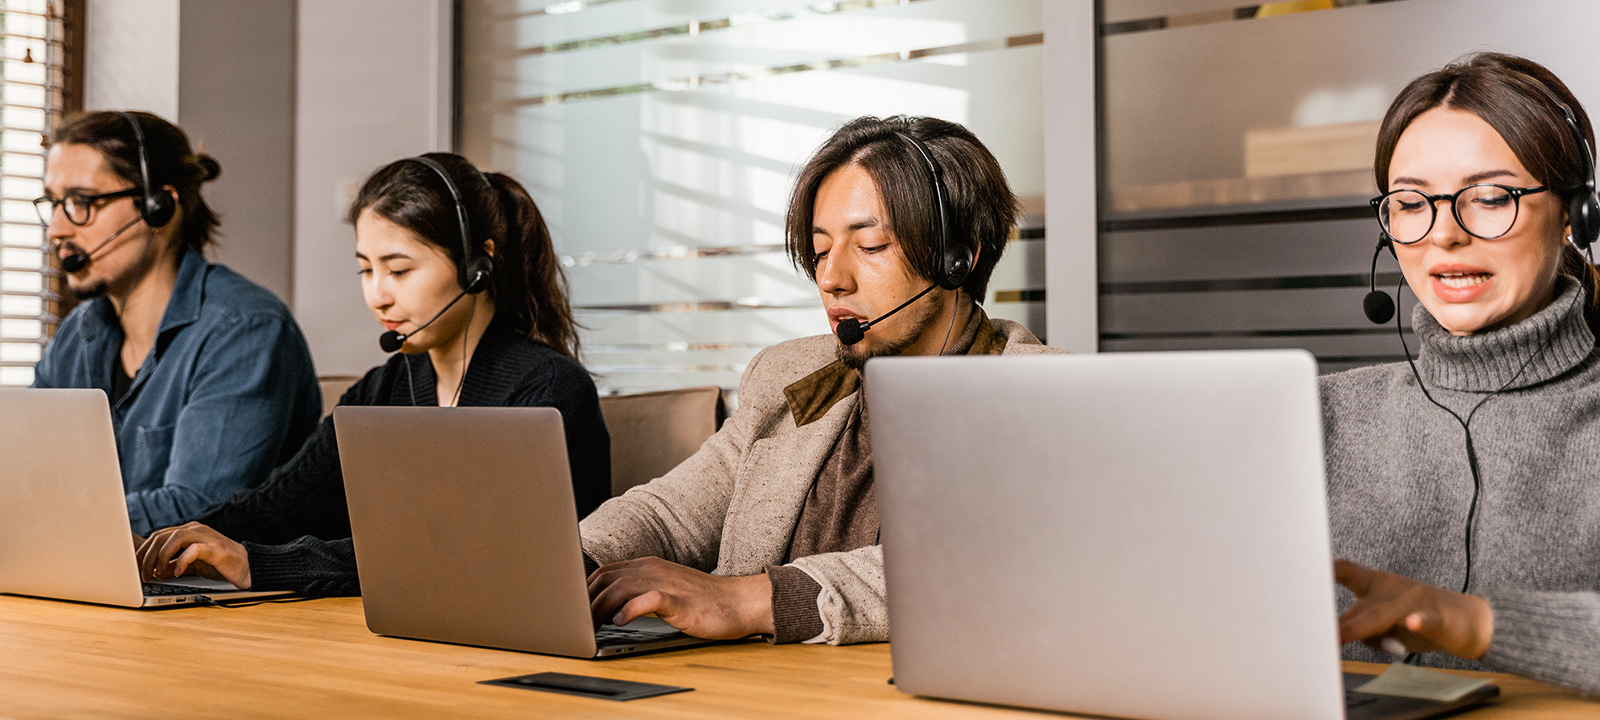 Make An Appointment Setting Call Center Part of Your Sales Funnel